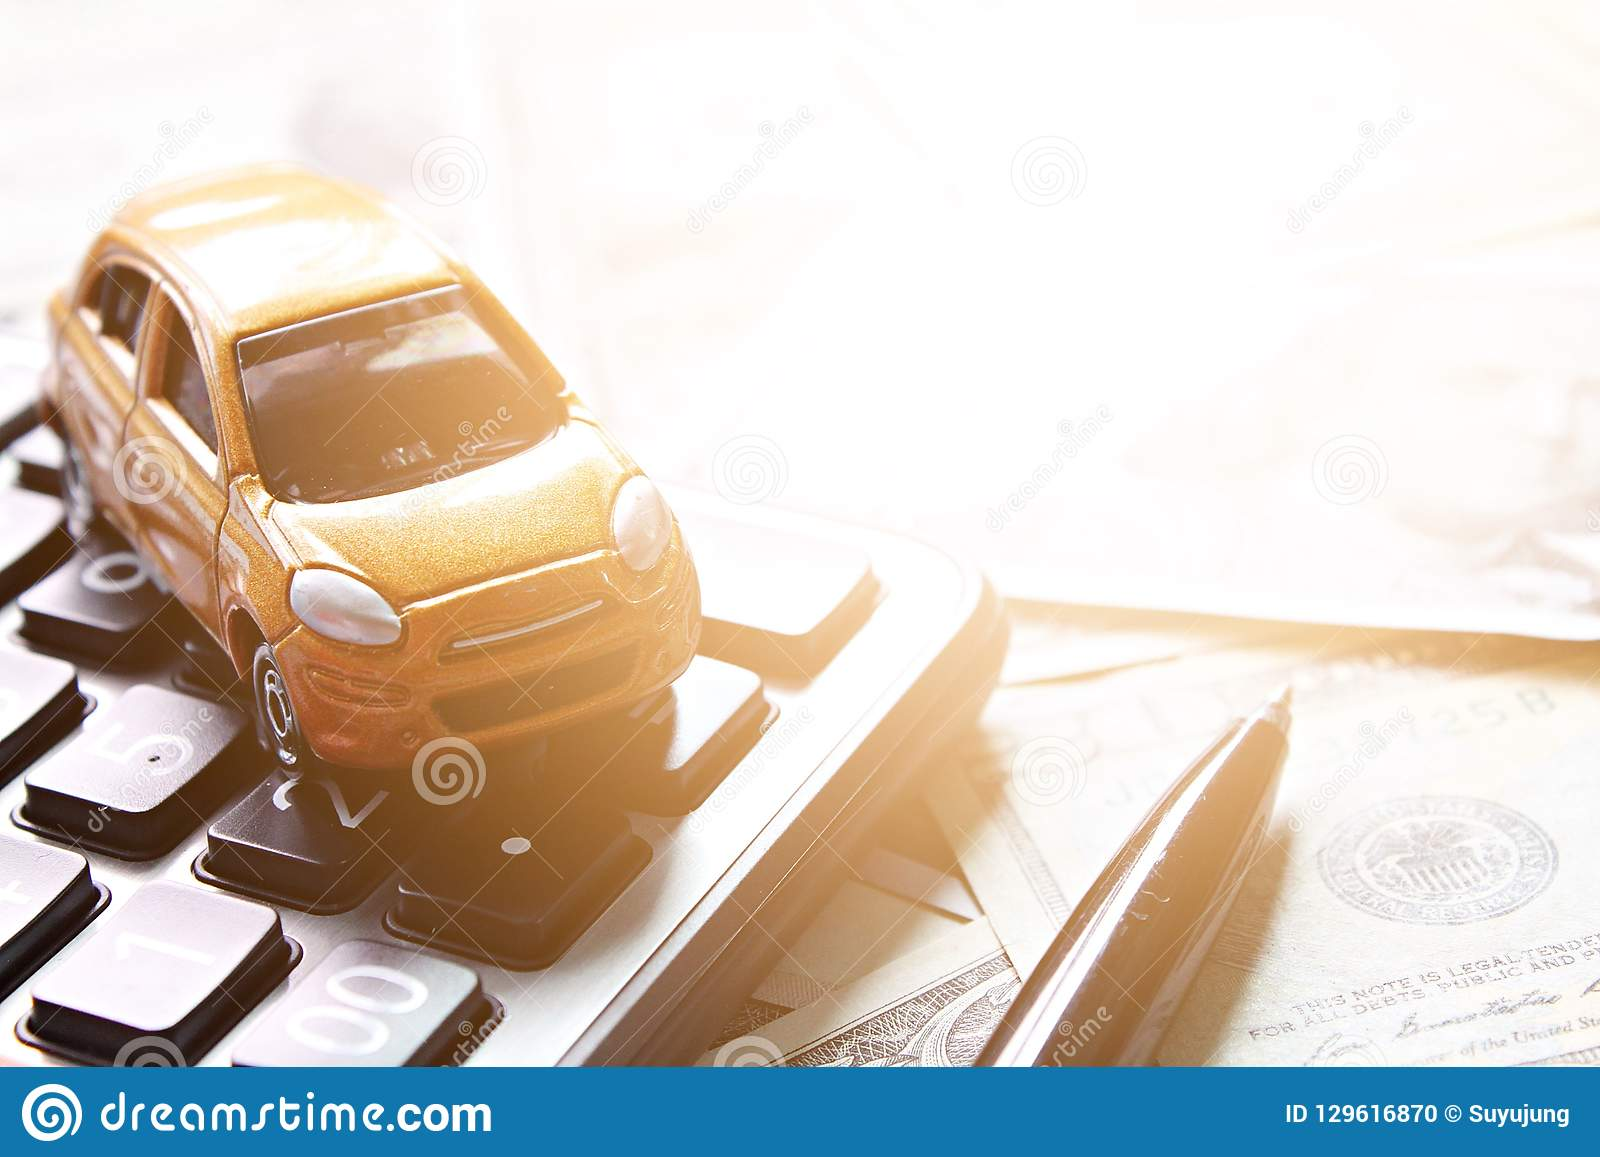 Top View Or Flat Lay Of Miniature Car Model And Calculator On American Dollars Cash Money Stock Photo Image Of Deposit Growth 129616870